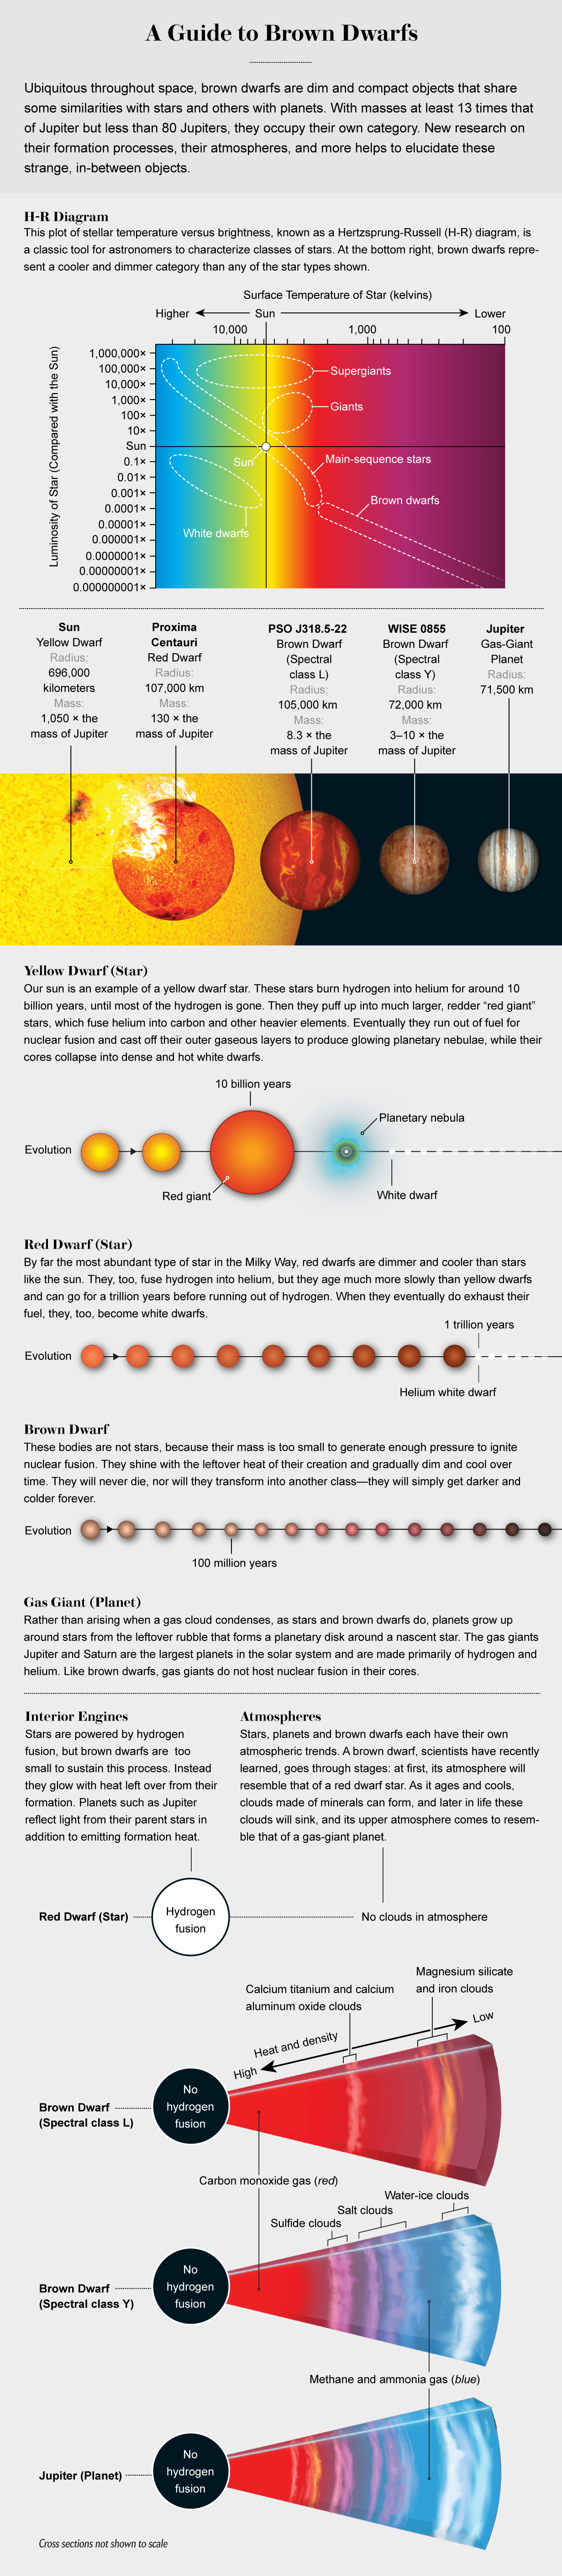 Graphic compares brown, yellow and red dwarfs and gas giants, highlighting attributes such as size, evolution and atmosphere.